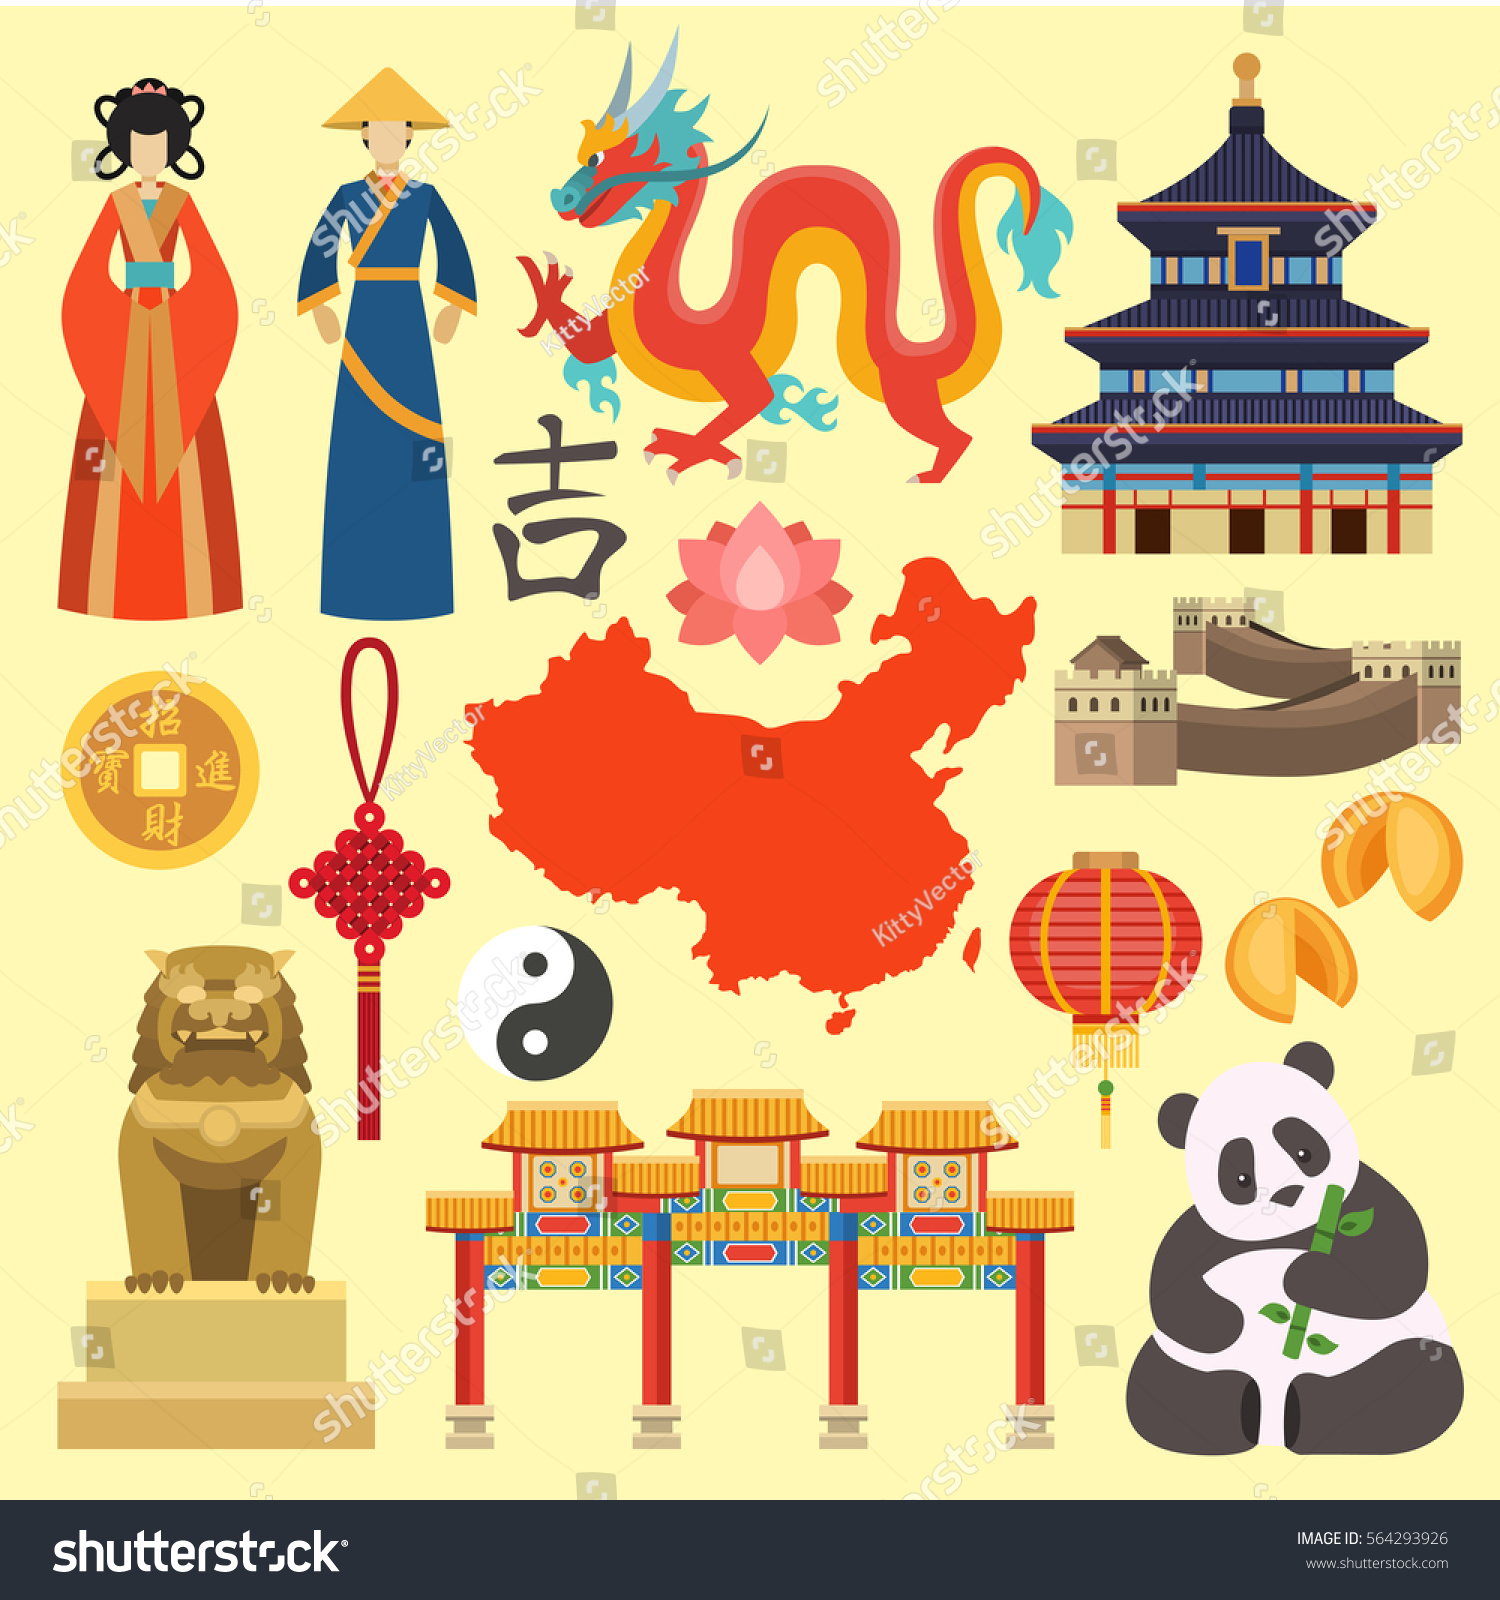 China Icons Vector Stock Vector (Royalty Free) 564293926 - Shutterstock